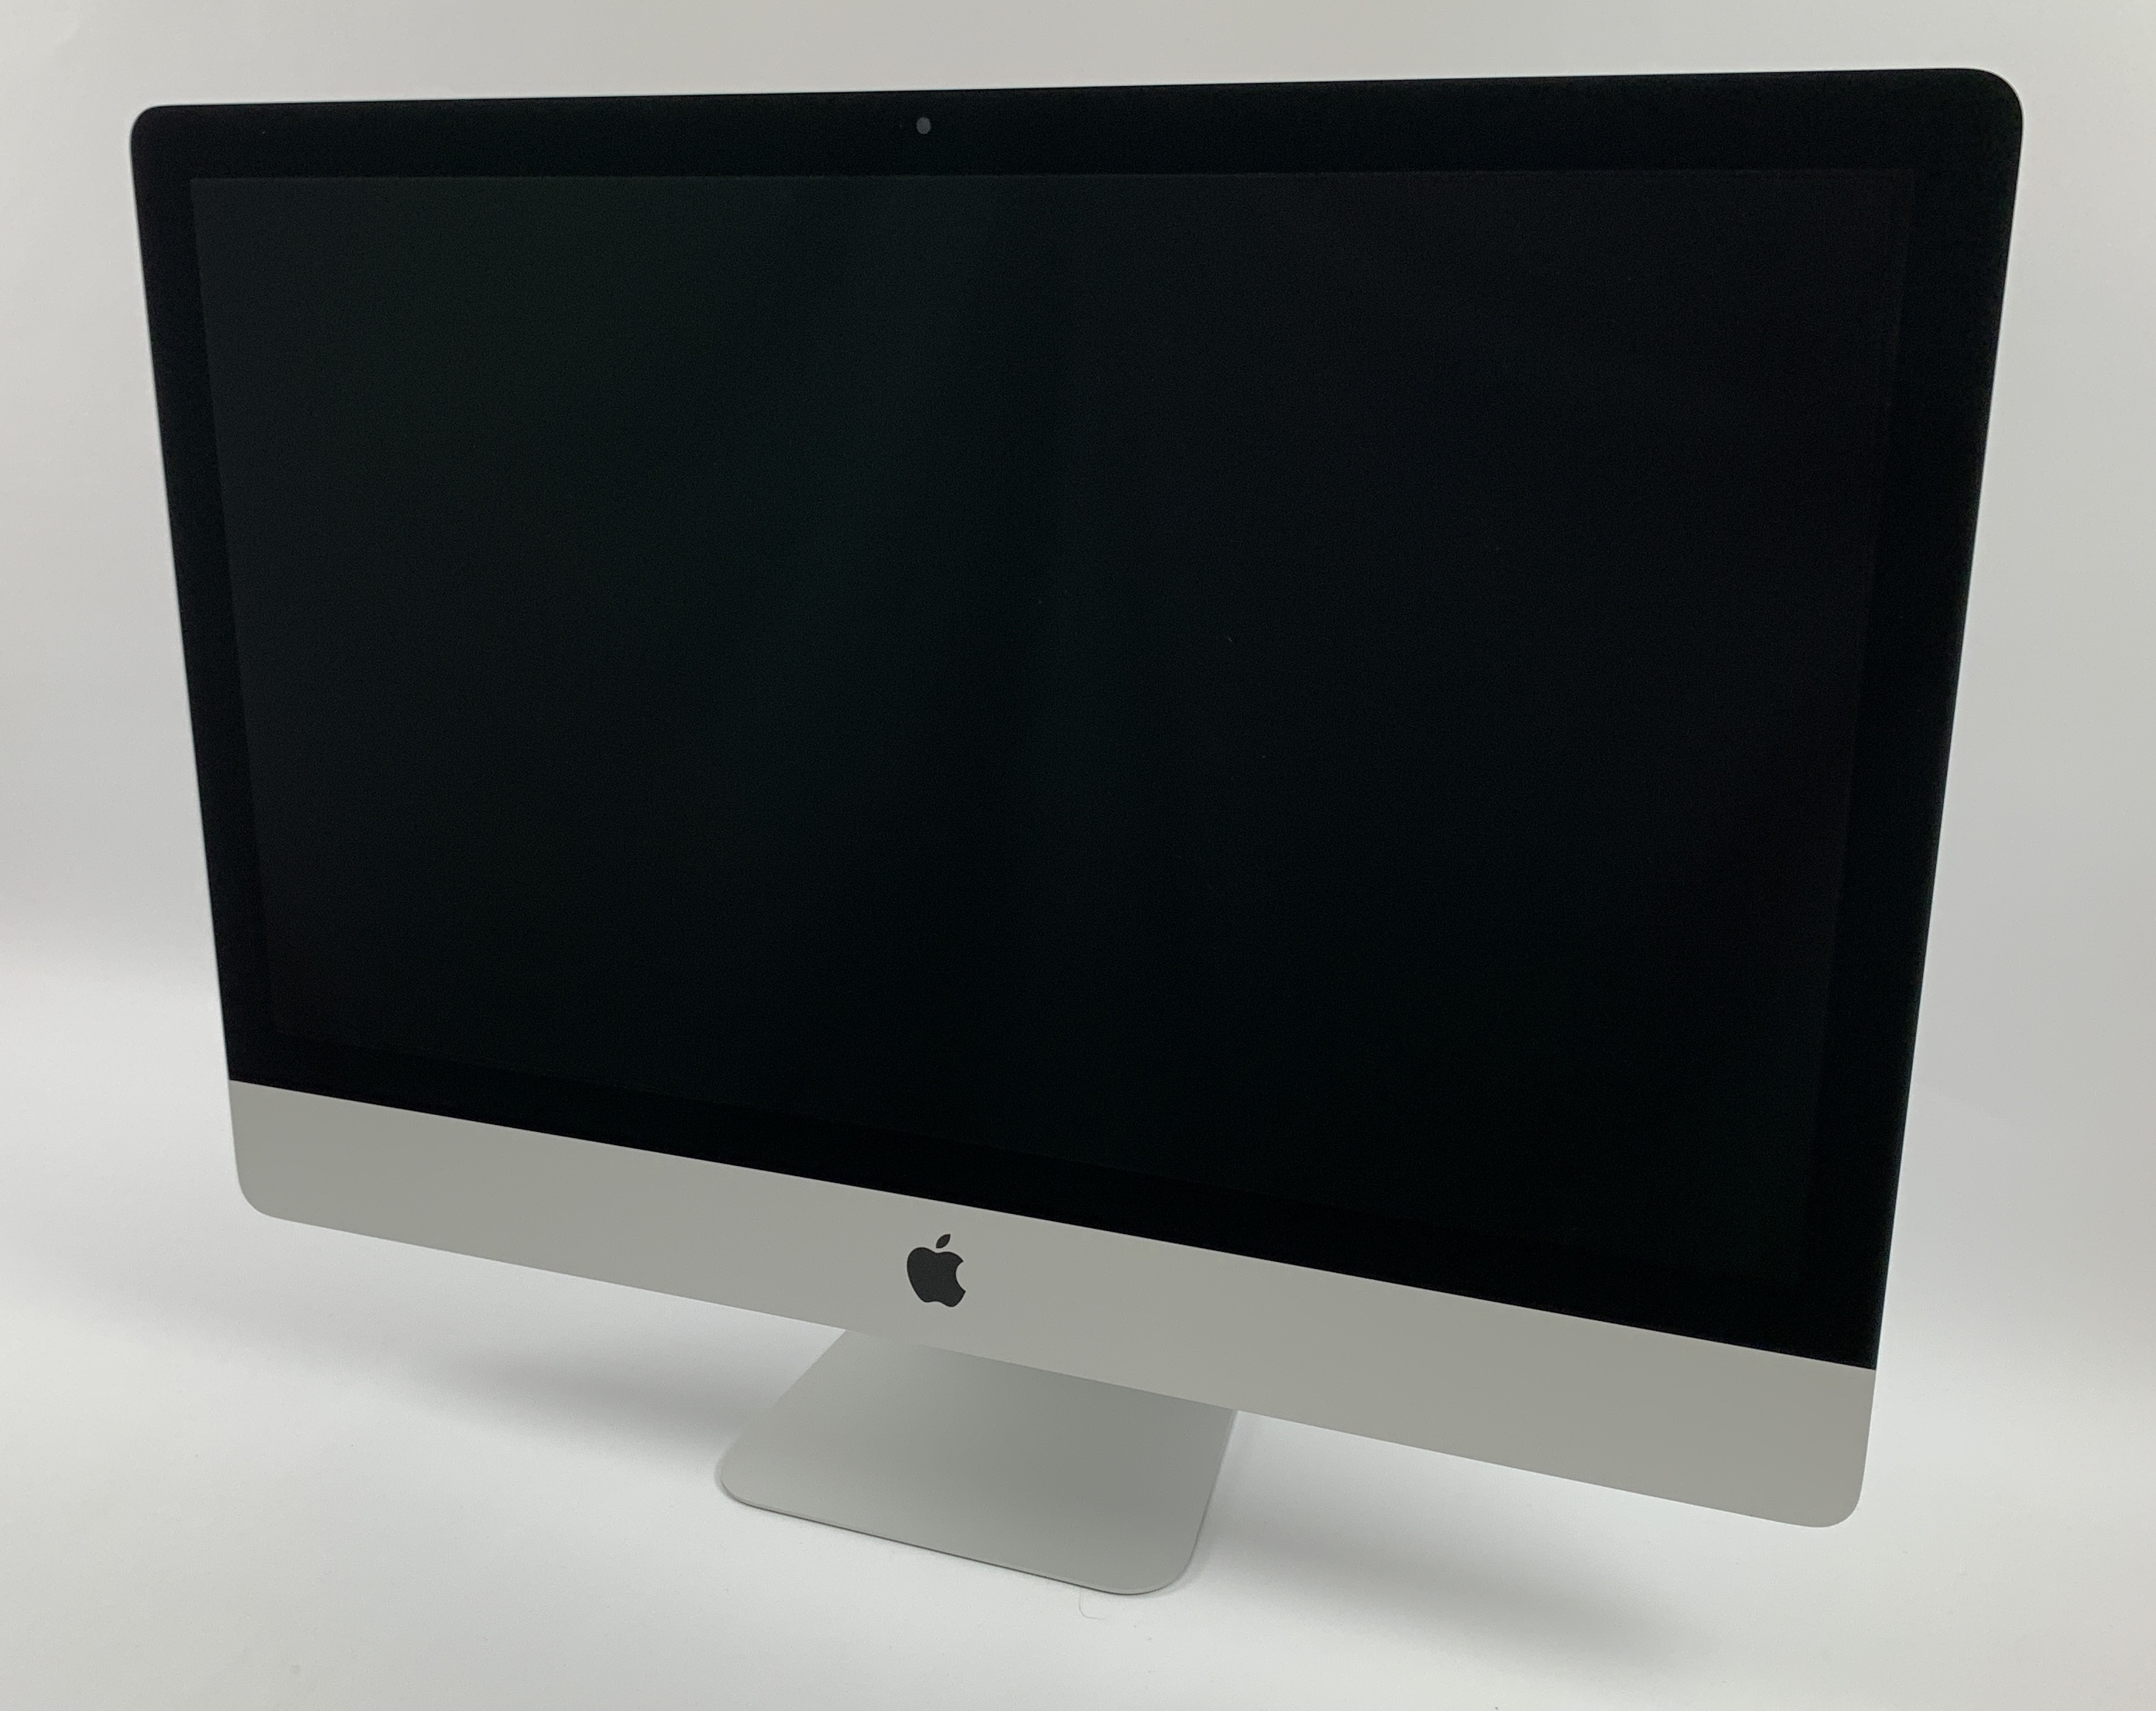 "iMac 27"" Retina 5K Mid 2020 (Intel 6-Core i5 3.3 GHz 8 GB RAM 512 GB SSD), Intel 6-Core i5 3.3 GHz, 8 GB RAM, 512 GB SSD, immagine 1"